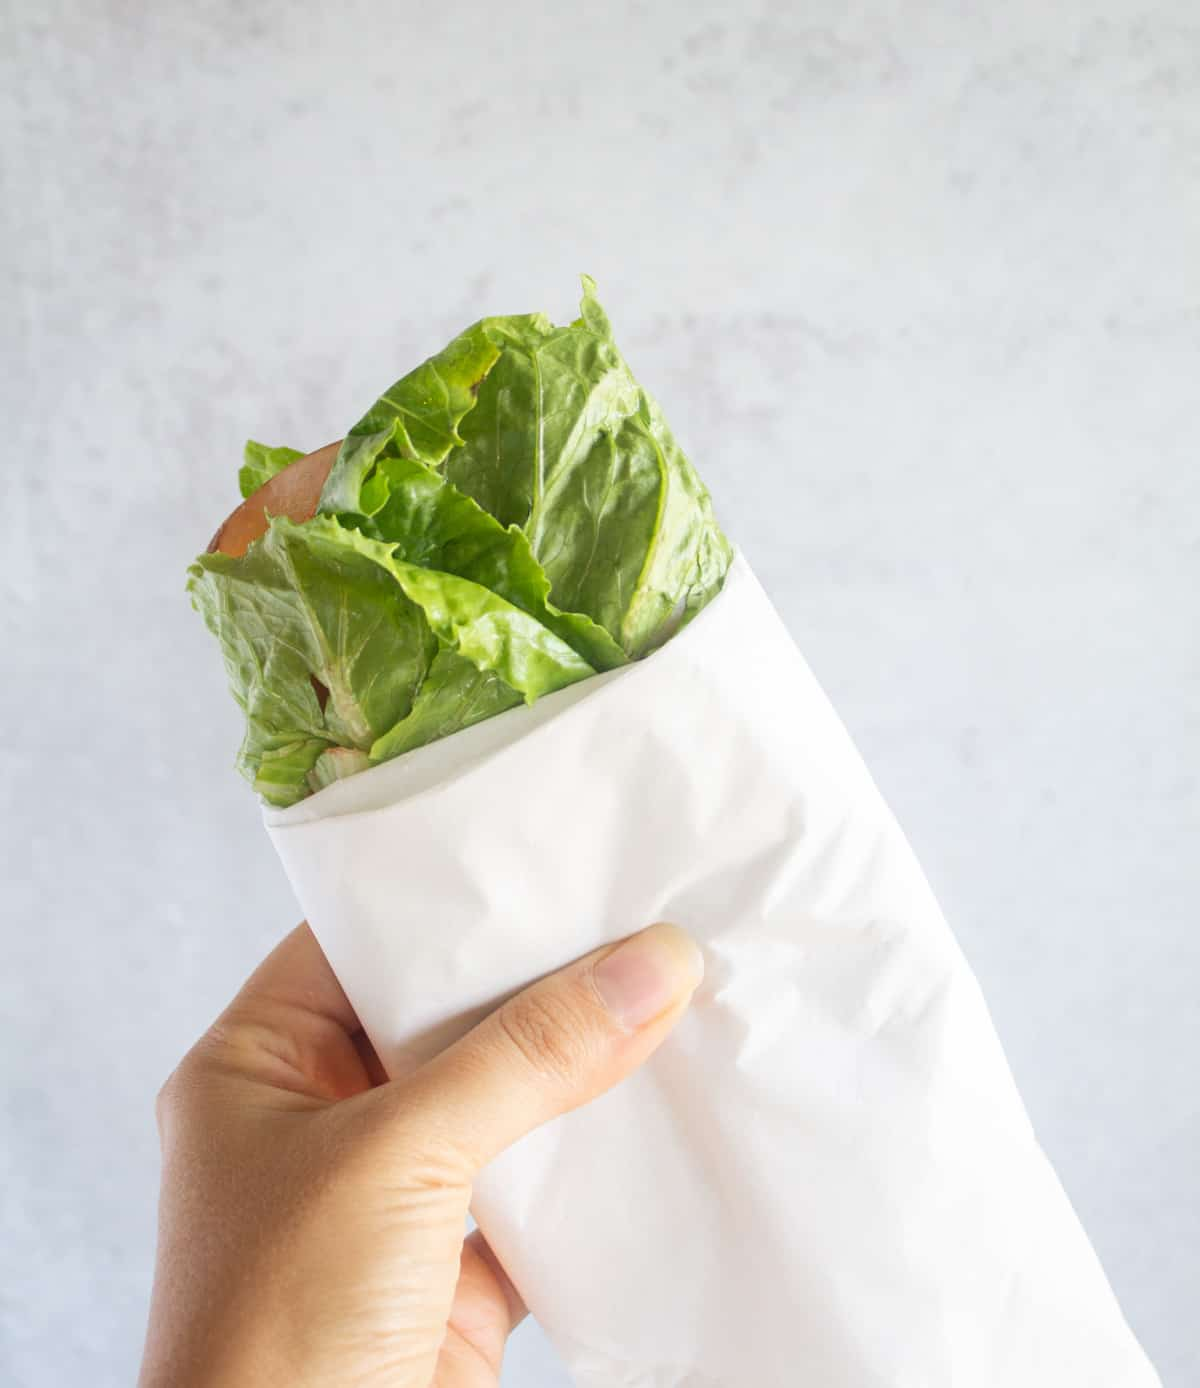 holding up a lettuce wrapped sandwich